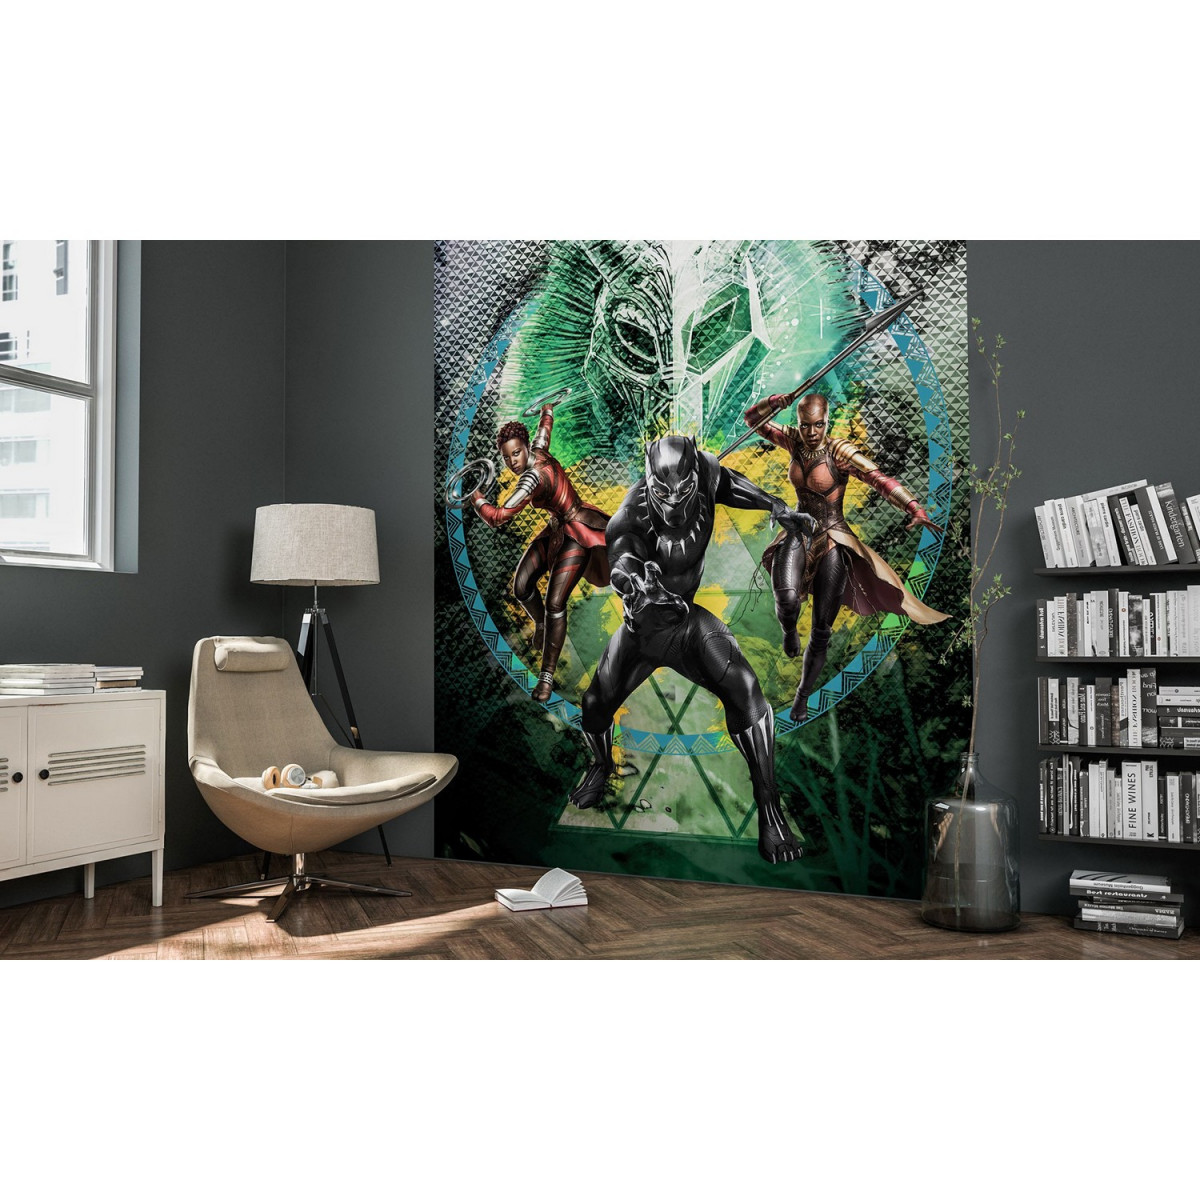 Black Panther Poster XXL mise en situation